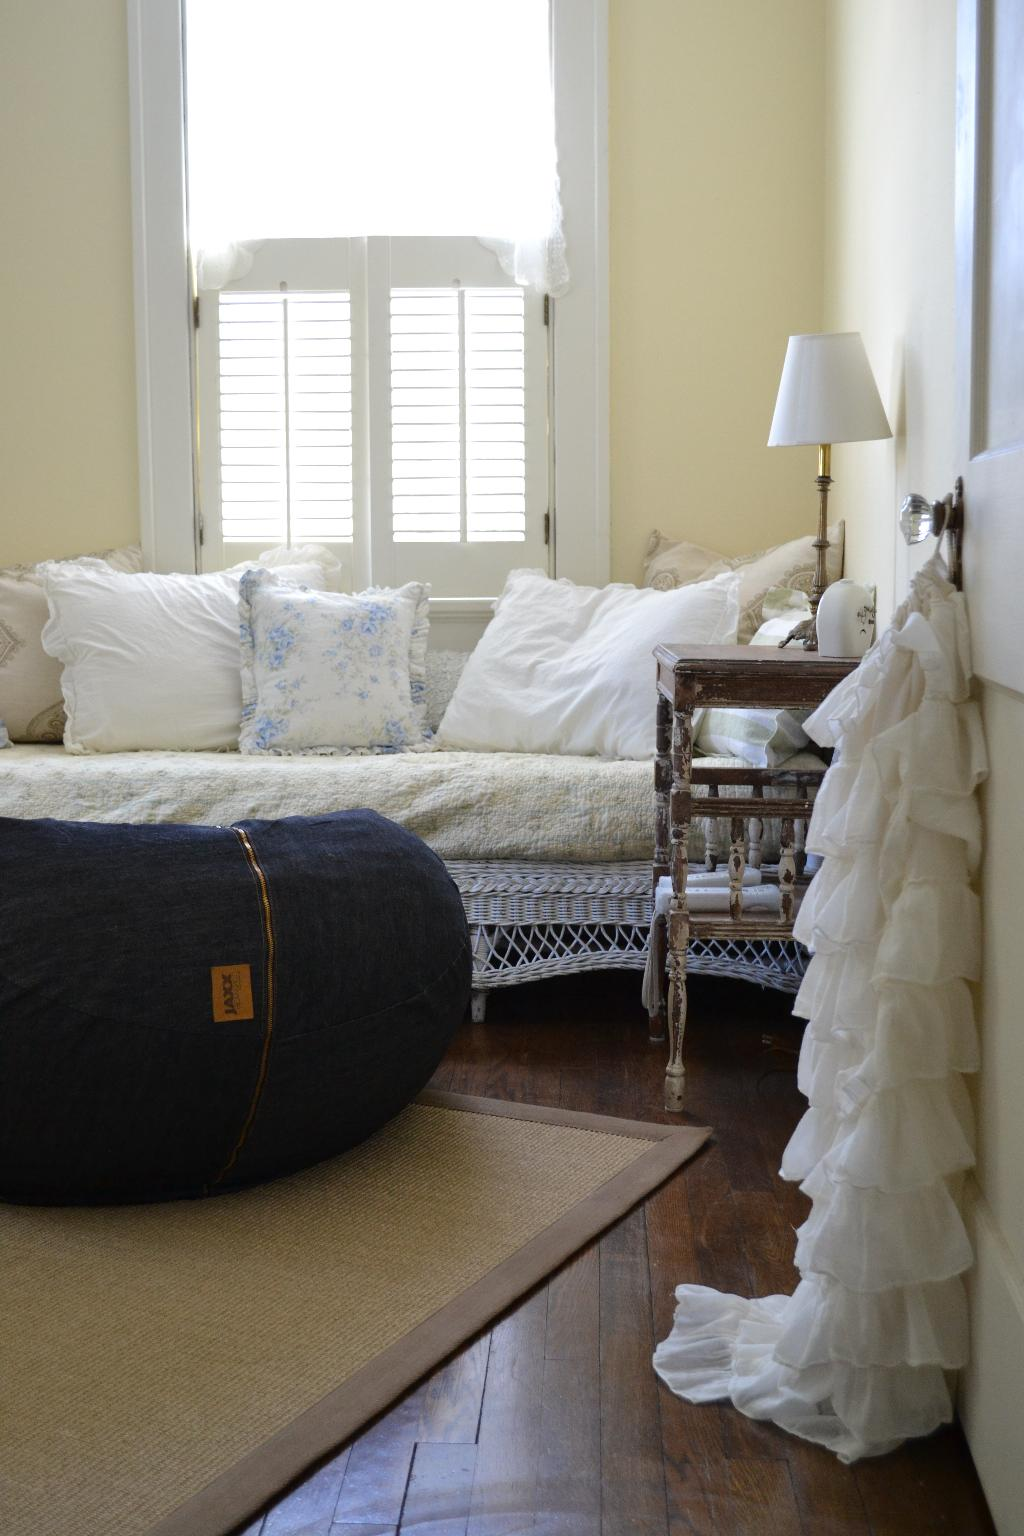 Cottage Fix - JAXX denim beanbag, wicker daybed, and ruffled tote